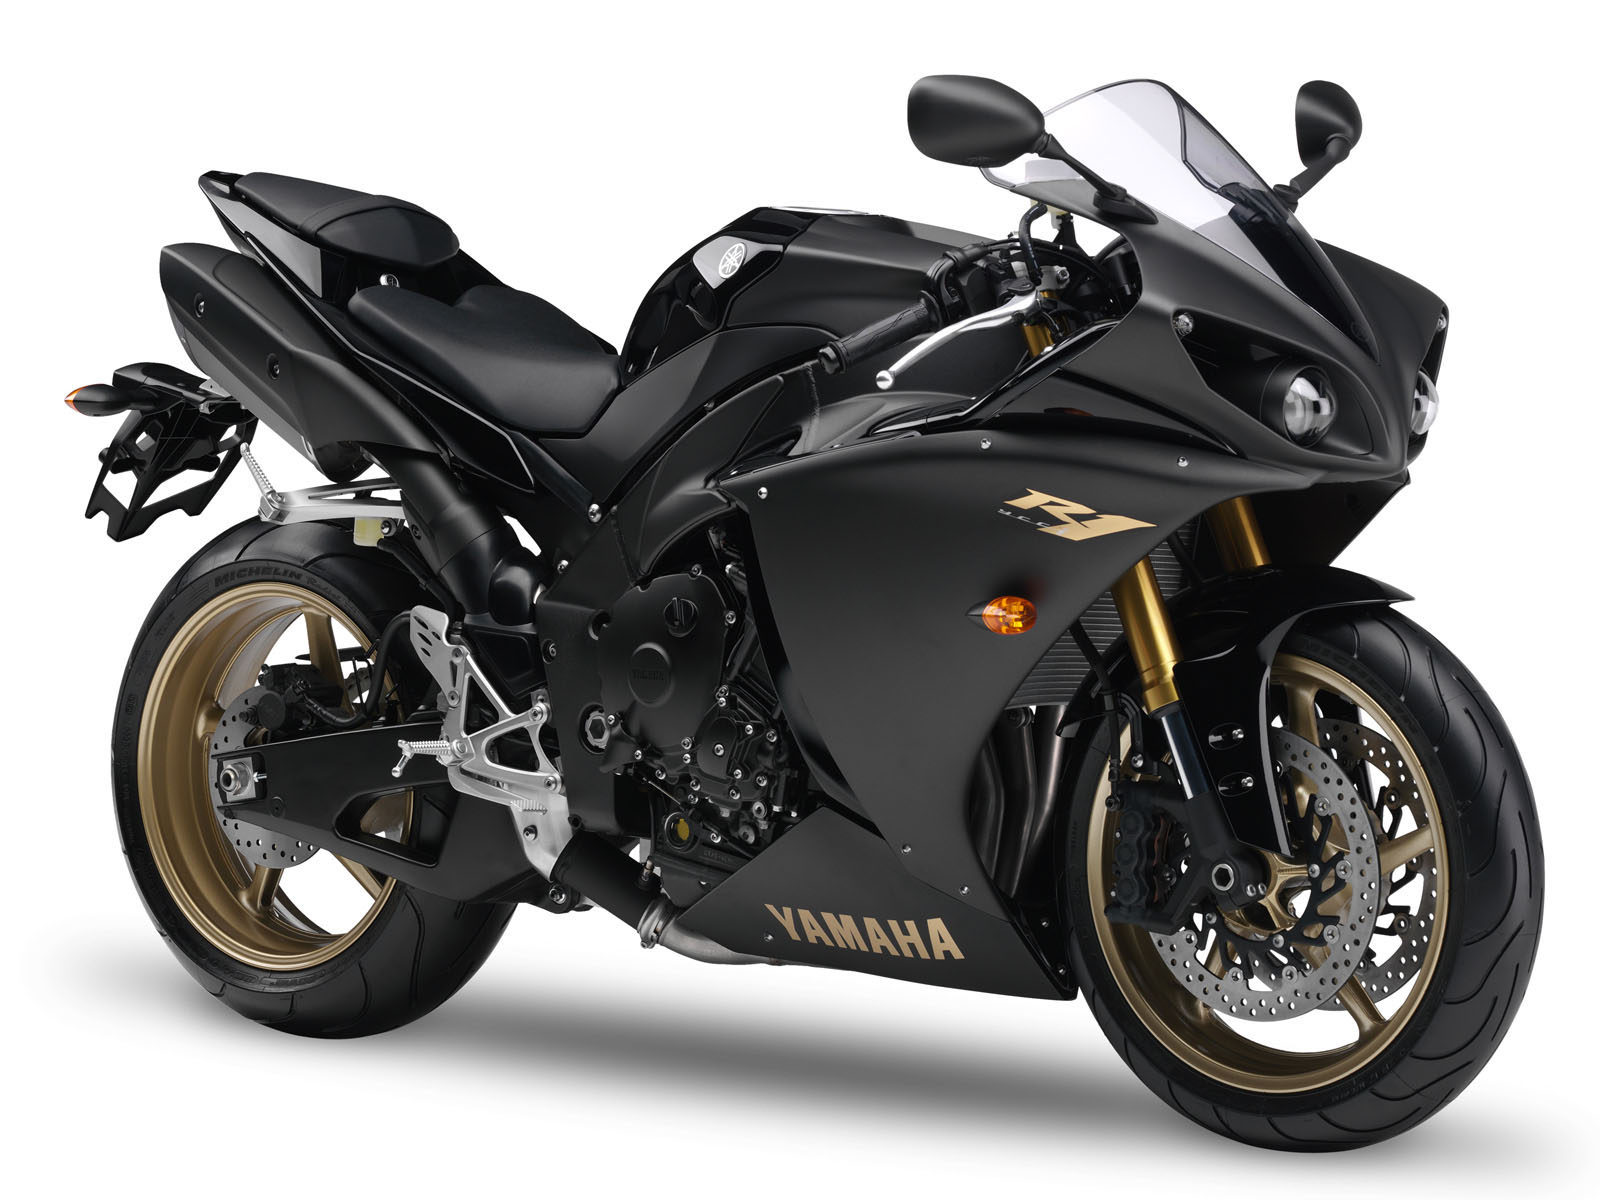 top motos yamaha r1 tunada. Black Bedroom Furniture Sets. Home Design Ideas